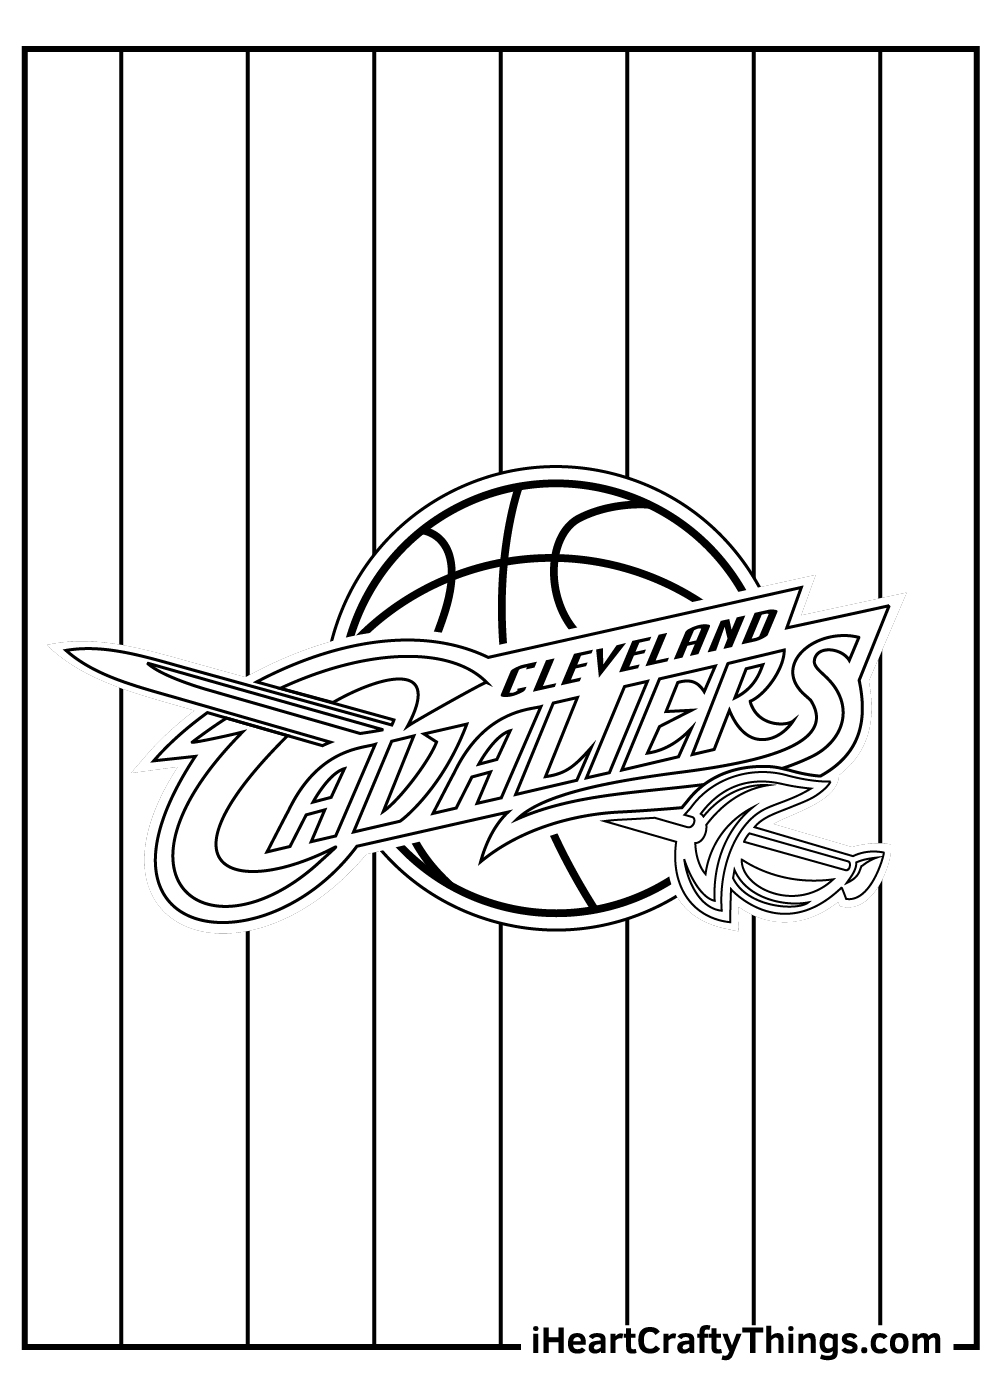 cleveland cavaliers NBA coloring pages free printable